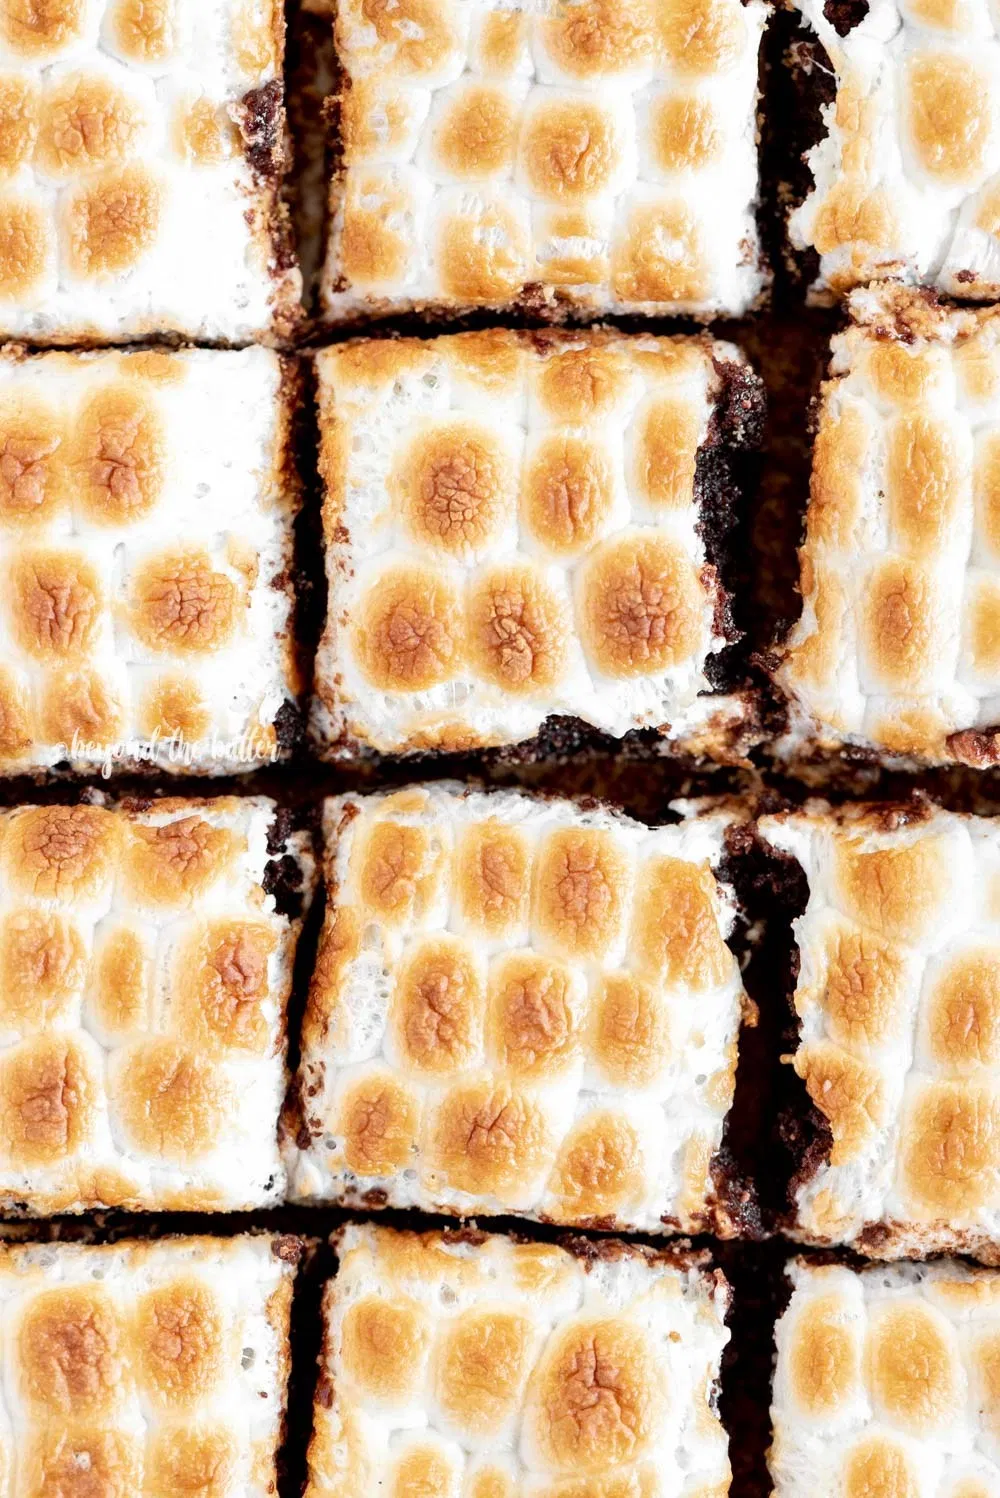 S'mores Brownies These LAYERED S'MORES BROWNIES are the perfect way to elevate that classic summer treat into something a little fancy! This decadent dessert is layered with toasted mini marshmallows, fudgy brownies with Ghirardelli Milk Chocolate Caramel Squares inside, followed by a buttery, graham cracker cr